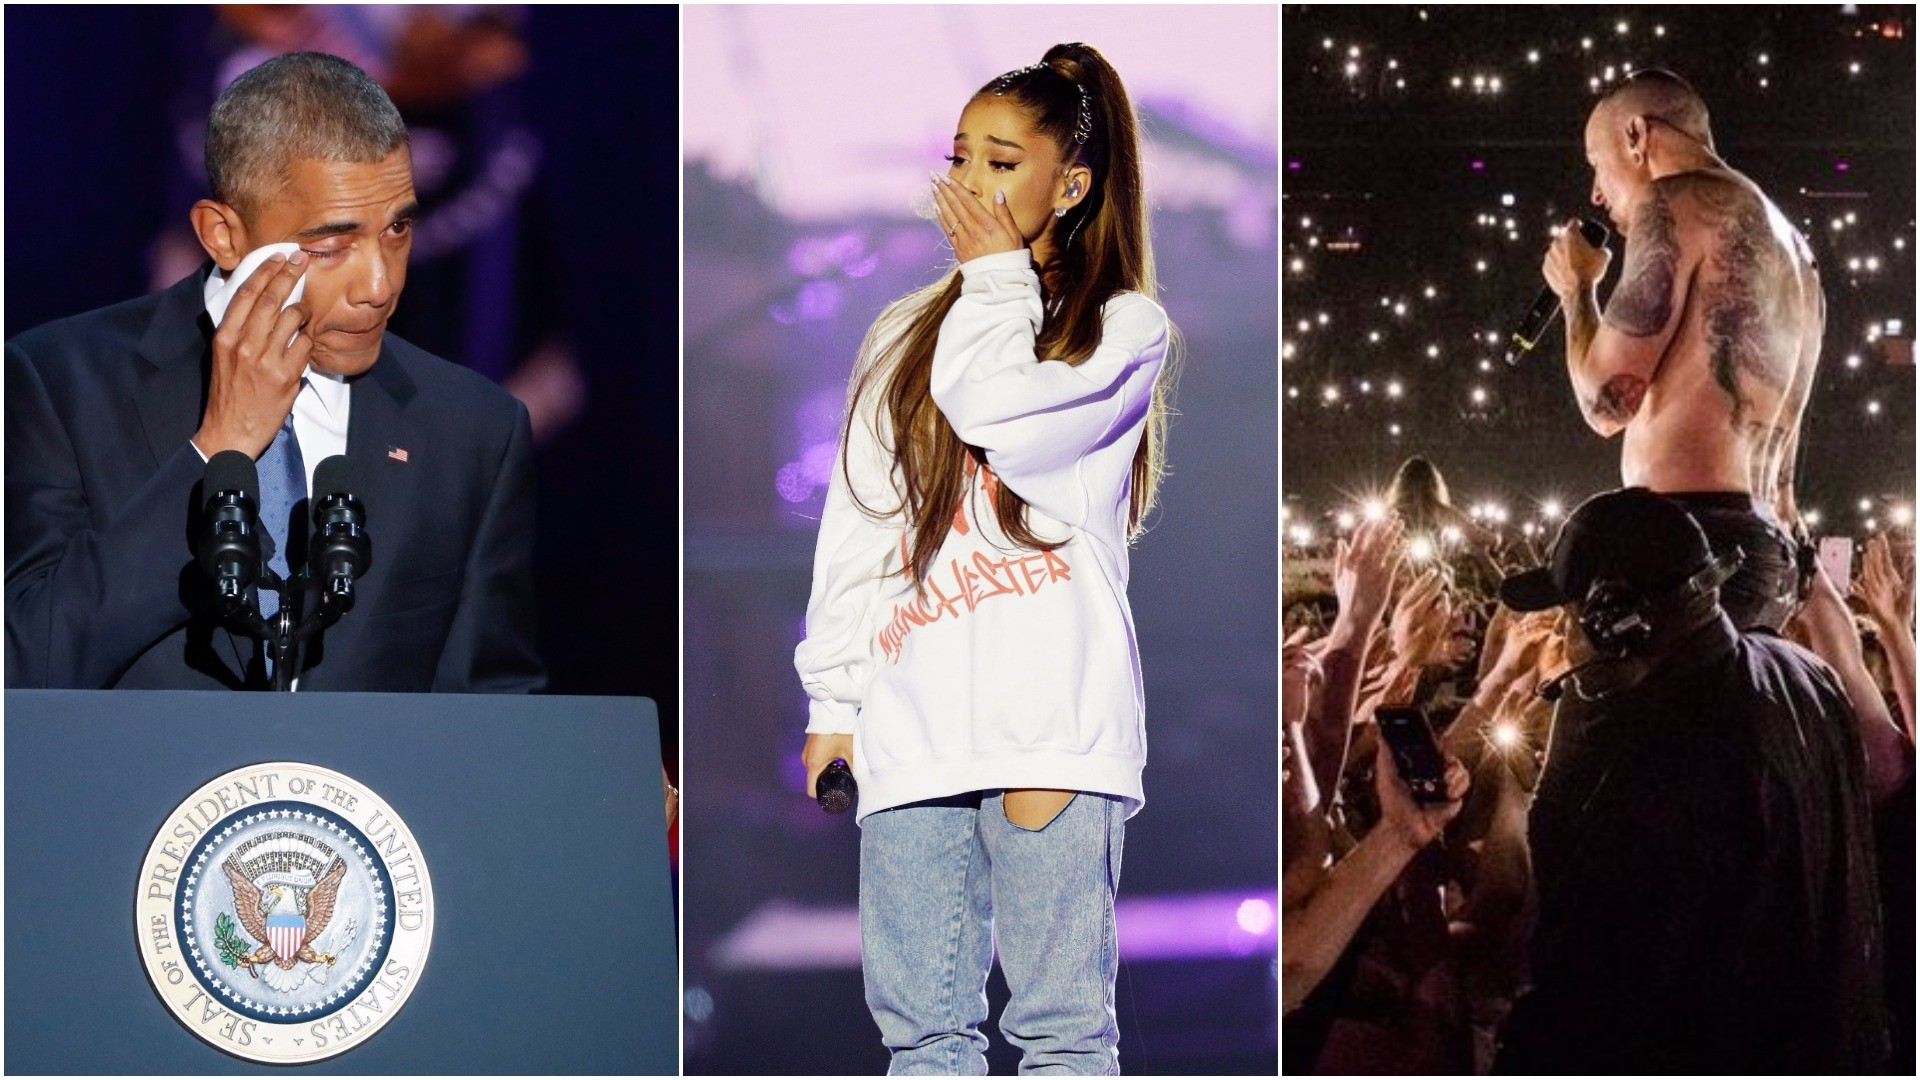 (L-R): Obama giving his farewell speech, Ariana Grande at the Manchester benefit concert, Linkin Park's C. Bennington. (EPA/AP/Twitter Photo)